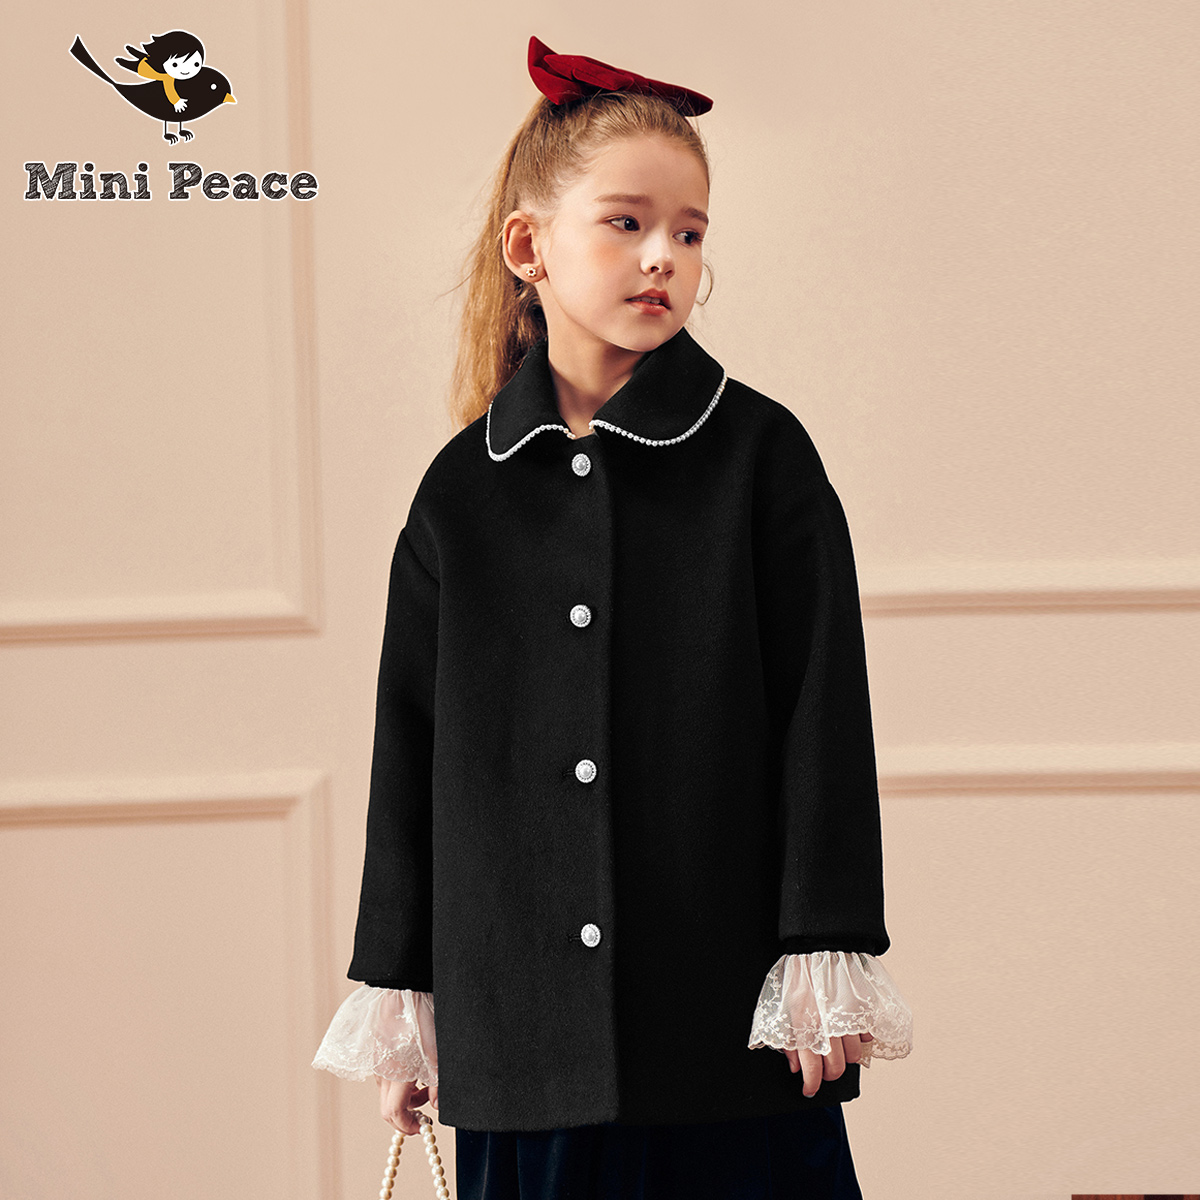 minipeace Peacebird children's clothing girls coat mid-length college style foreign style children's coat autumn and winter new